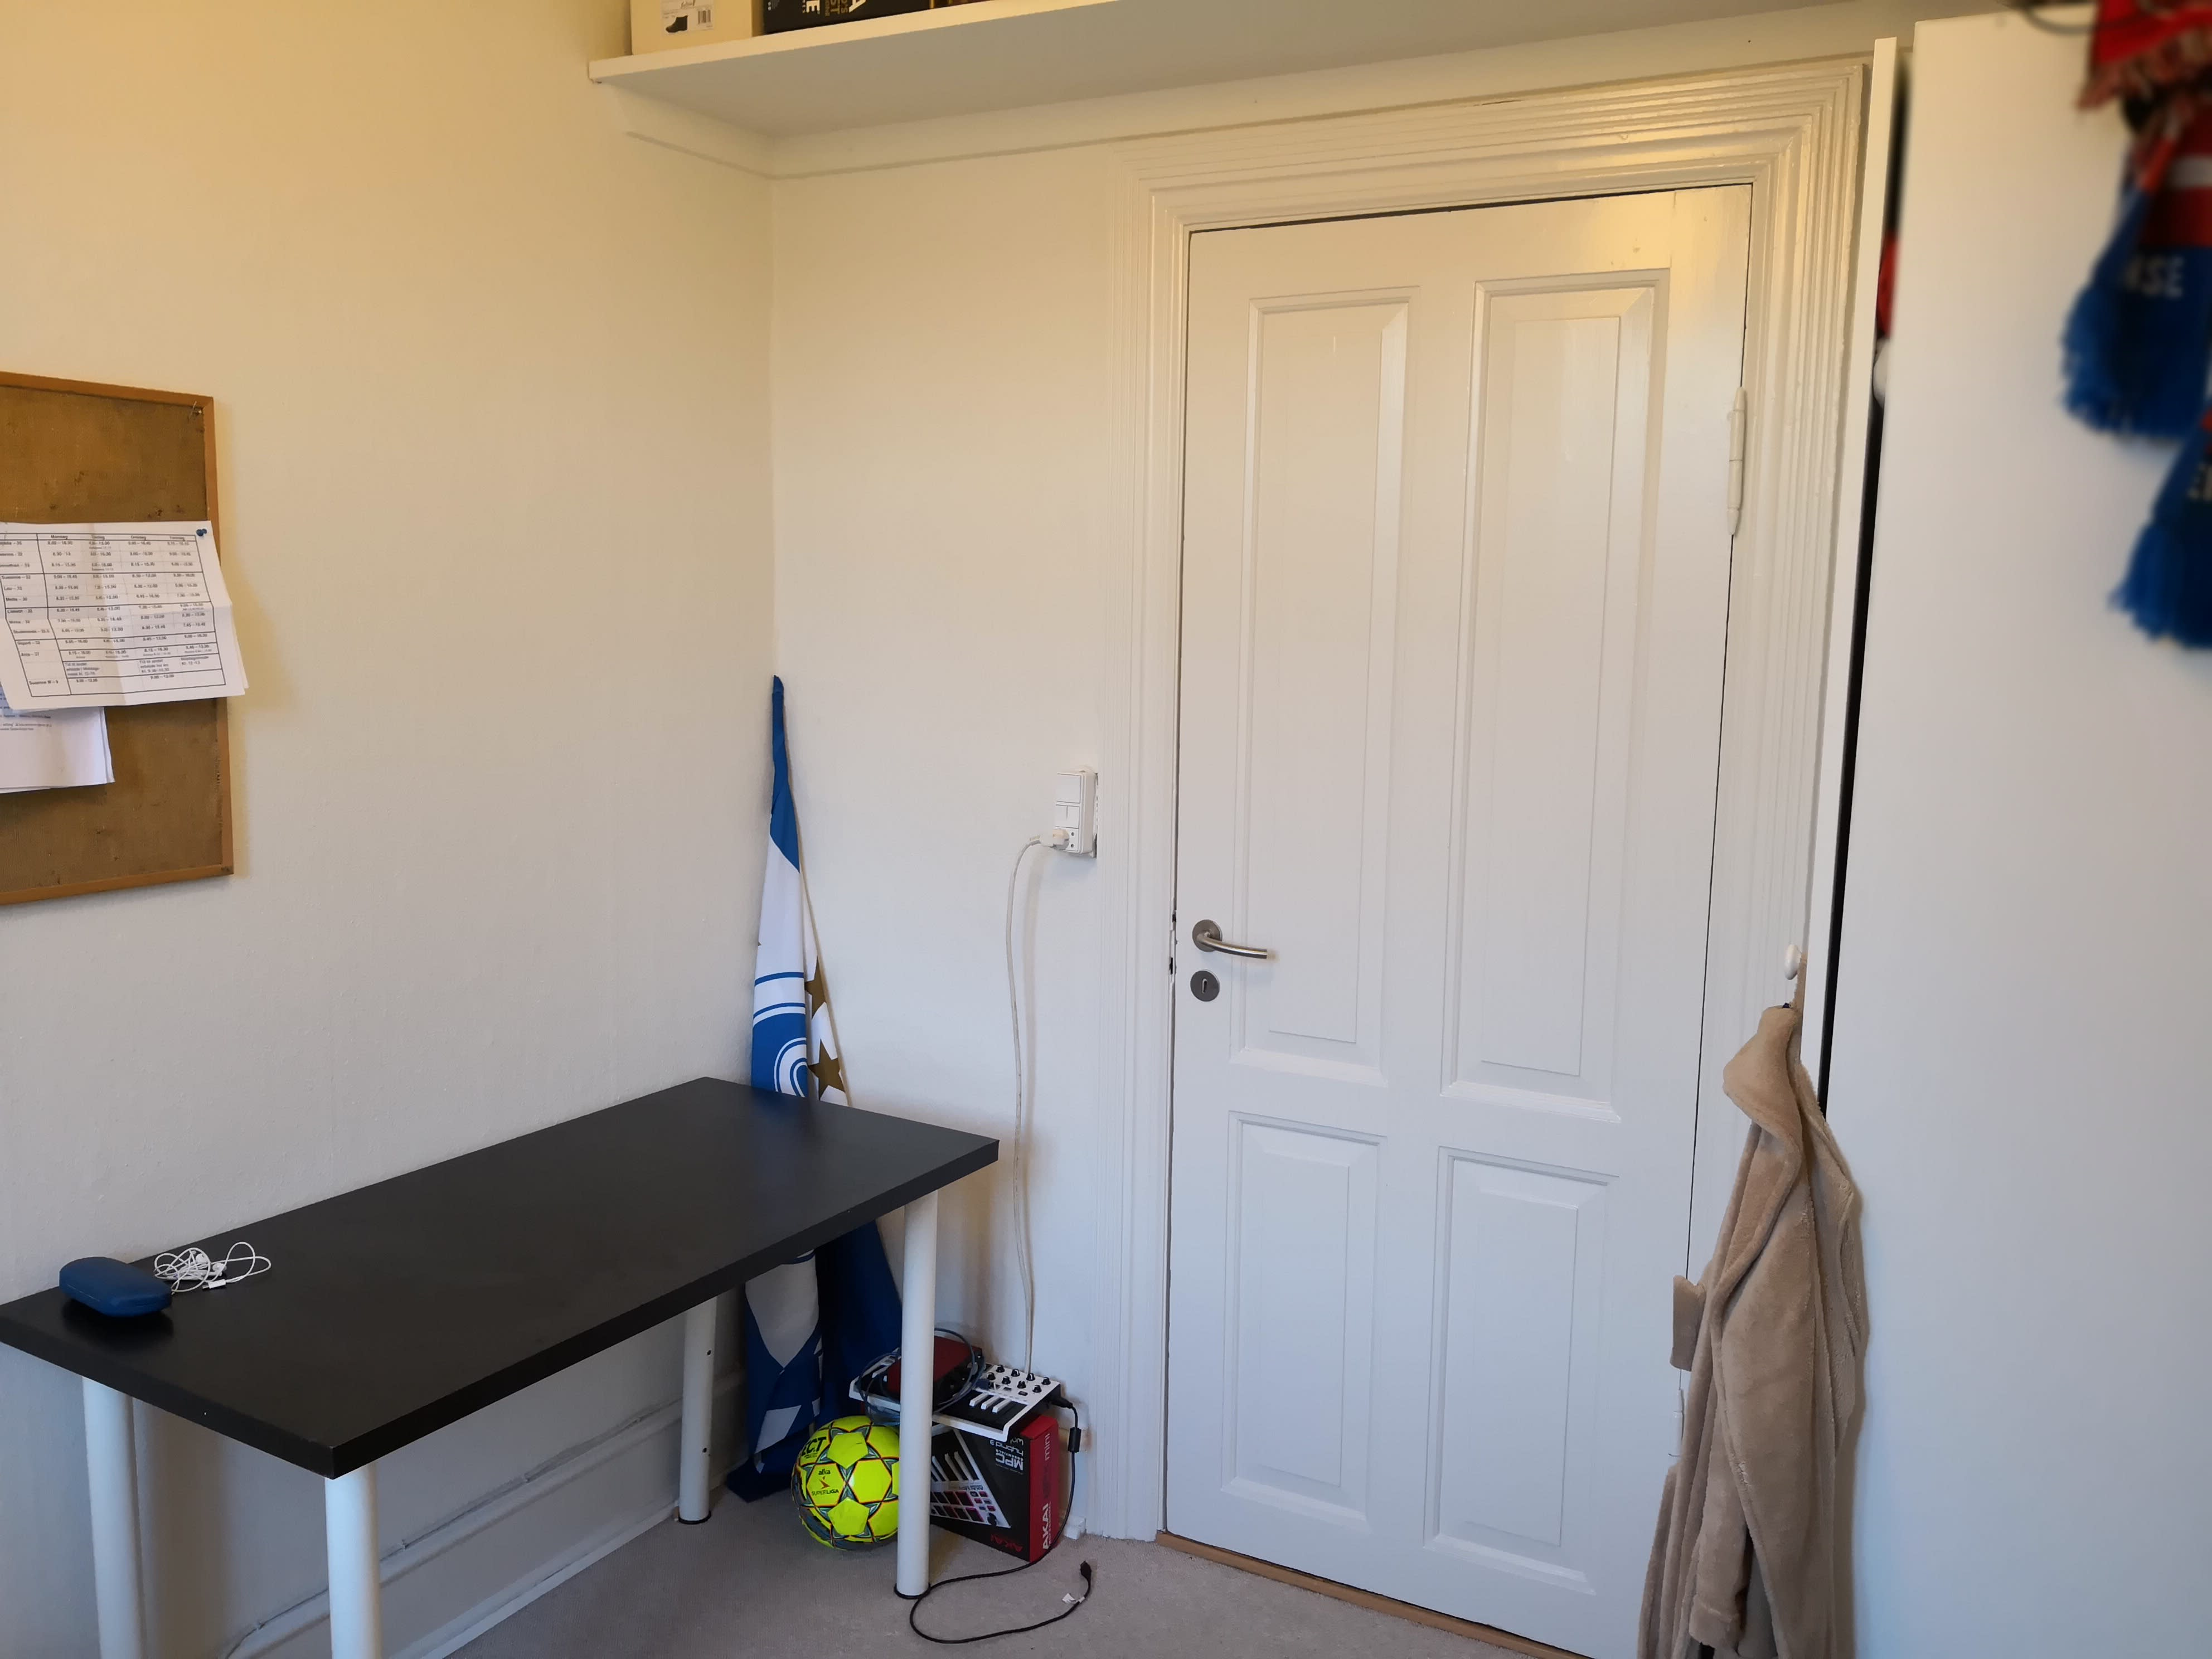 Roomie is searched for big light 5 bedroom apartment in the middle of Odense